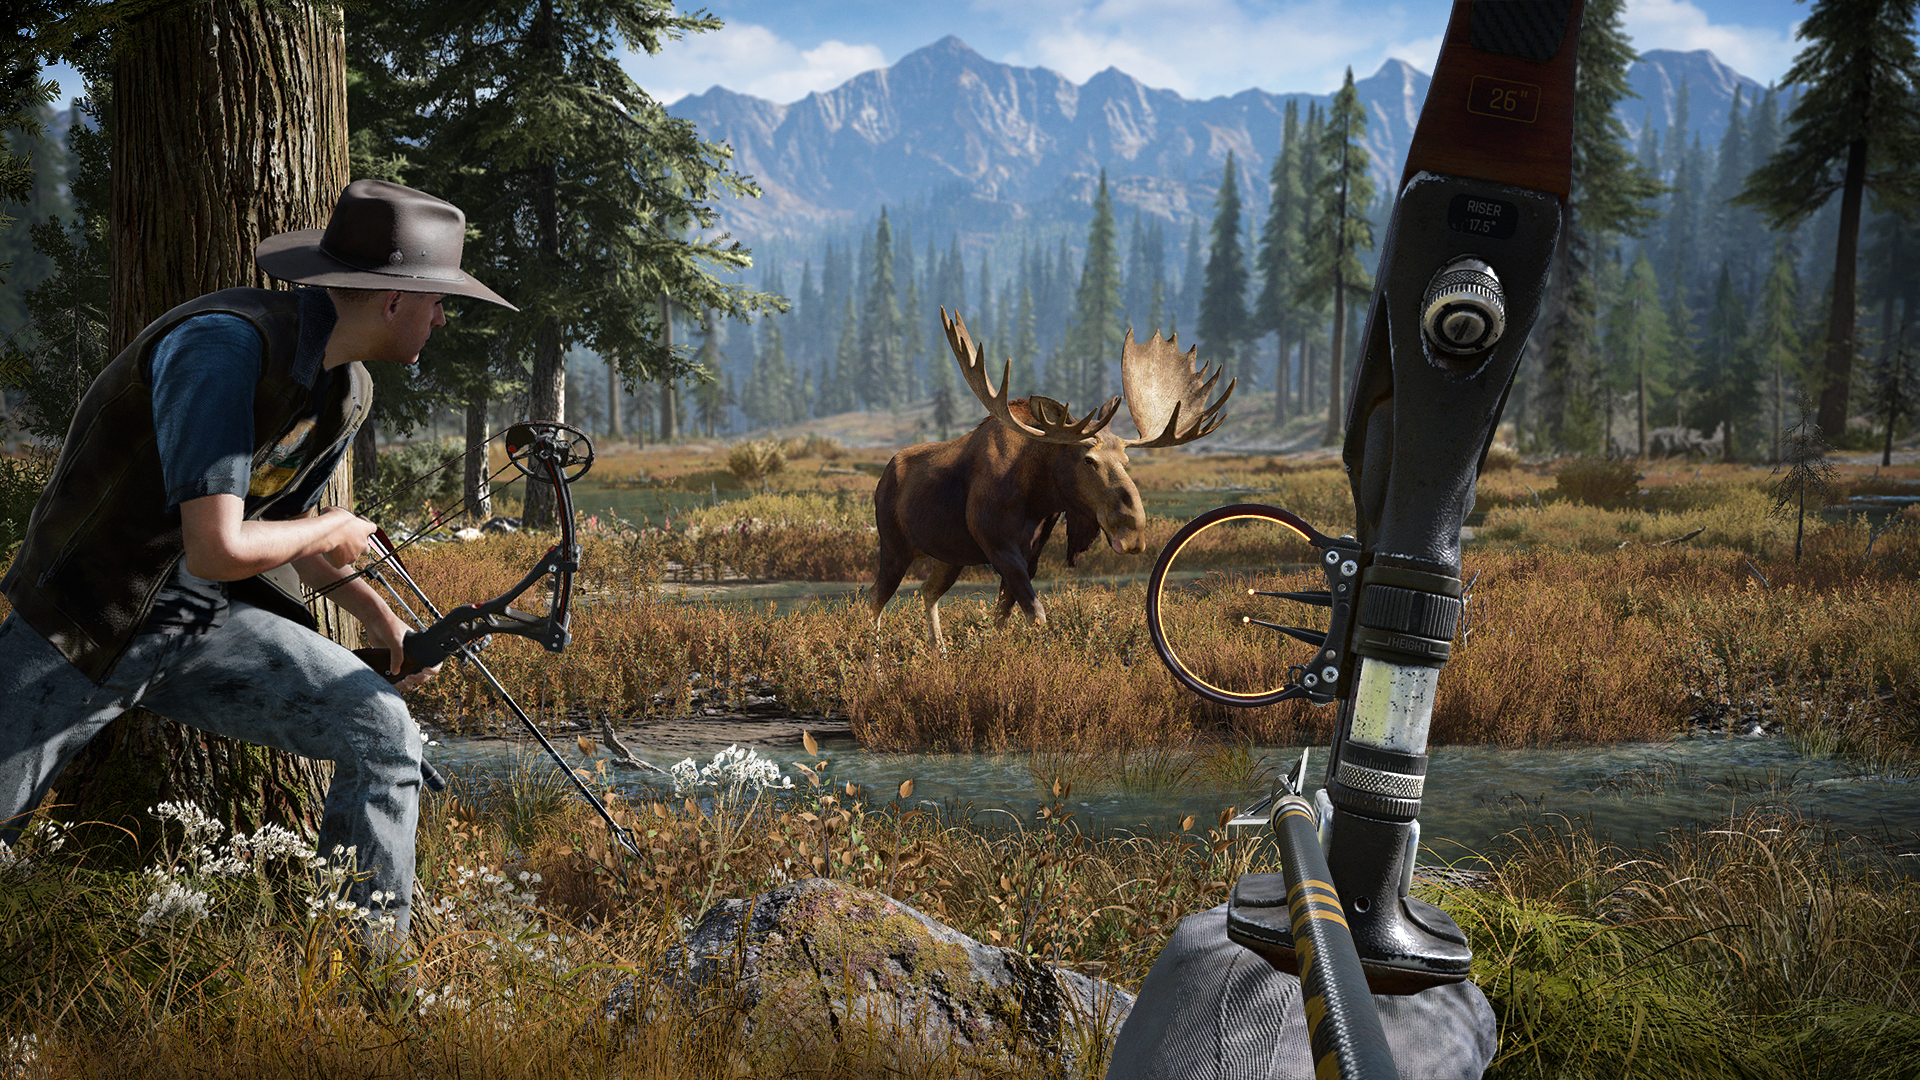 Far Cry 5 s Co op Mode Retains The Sanctity Of A Single Player Story     Far Cry 5 s Co op Mode Retains The Sanctity Of A Single Player Story  Says  Ubisoft